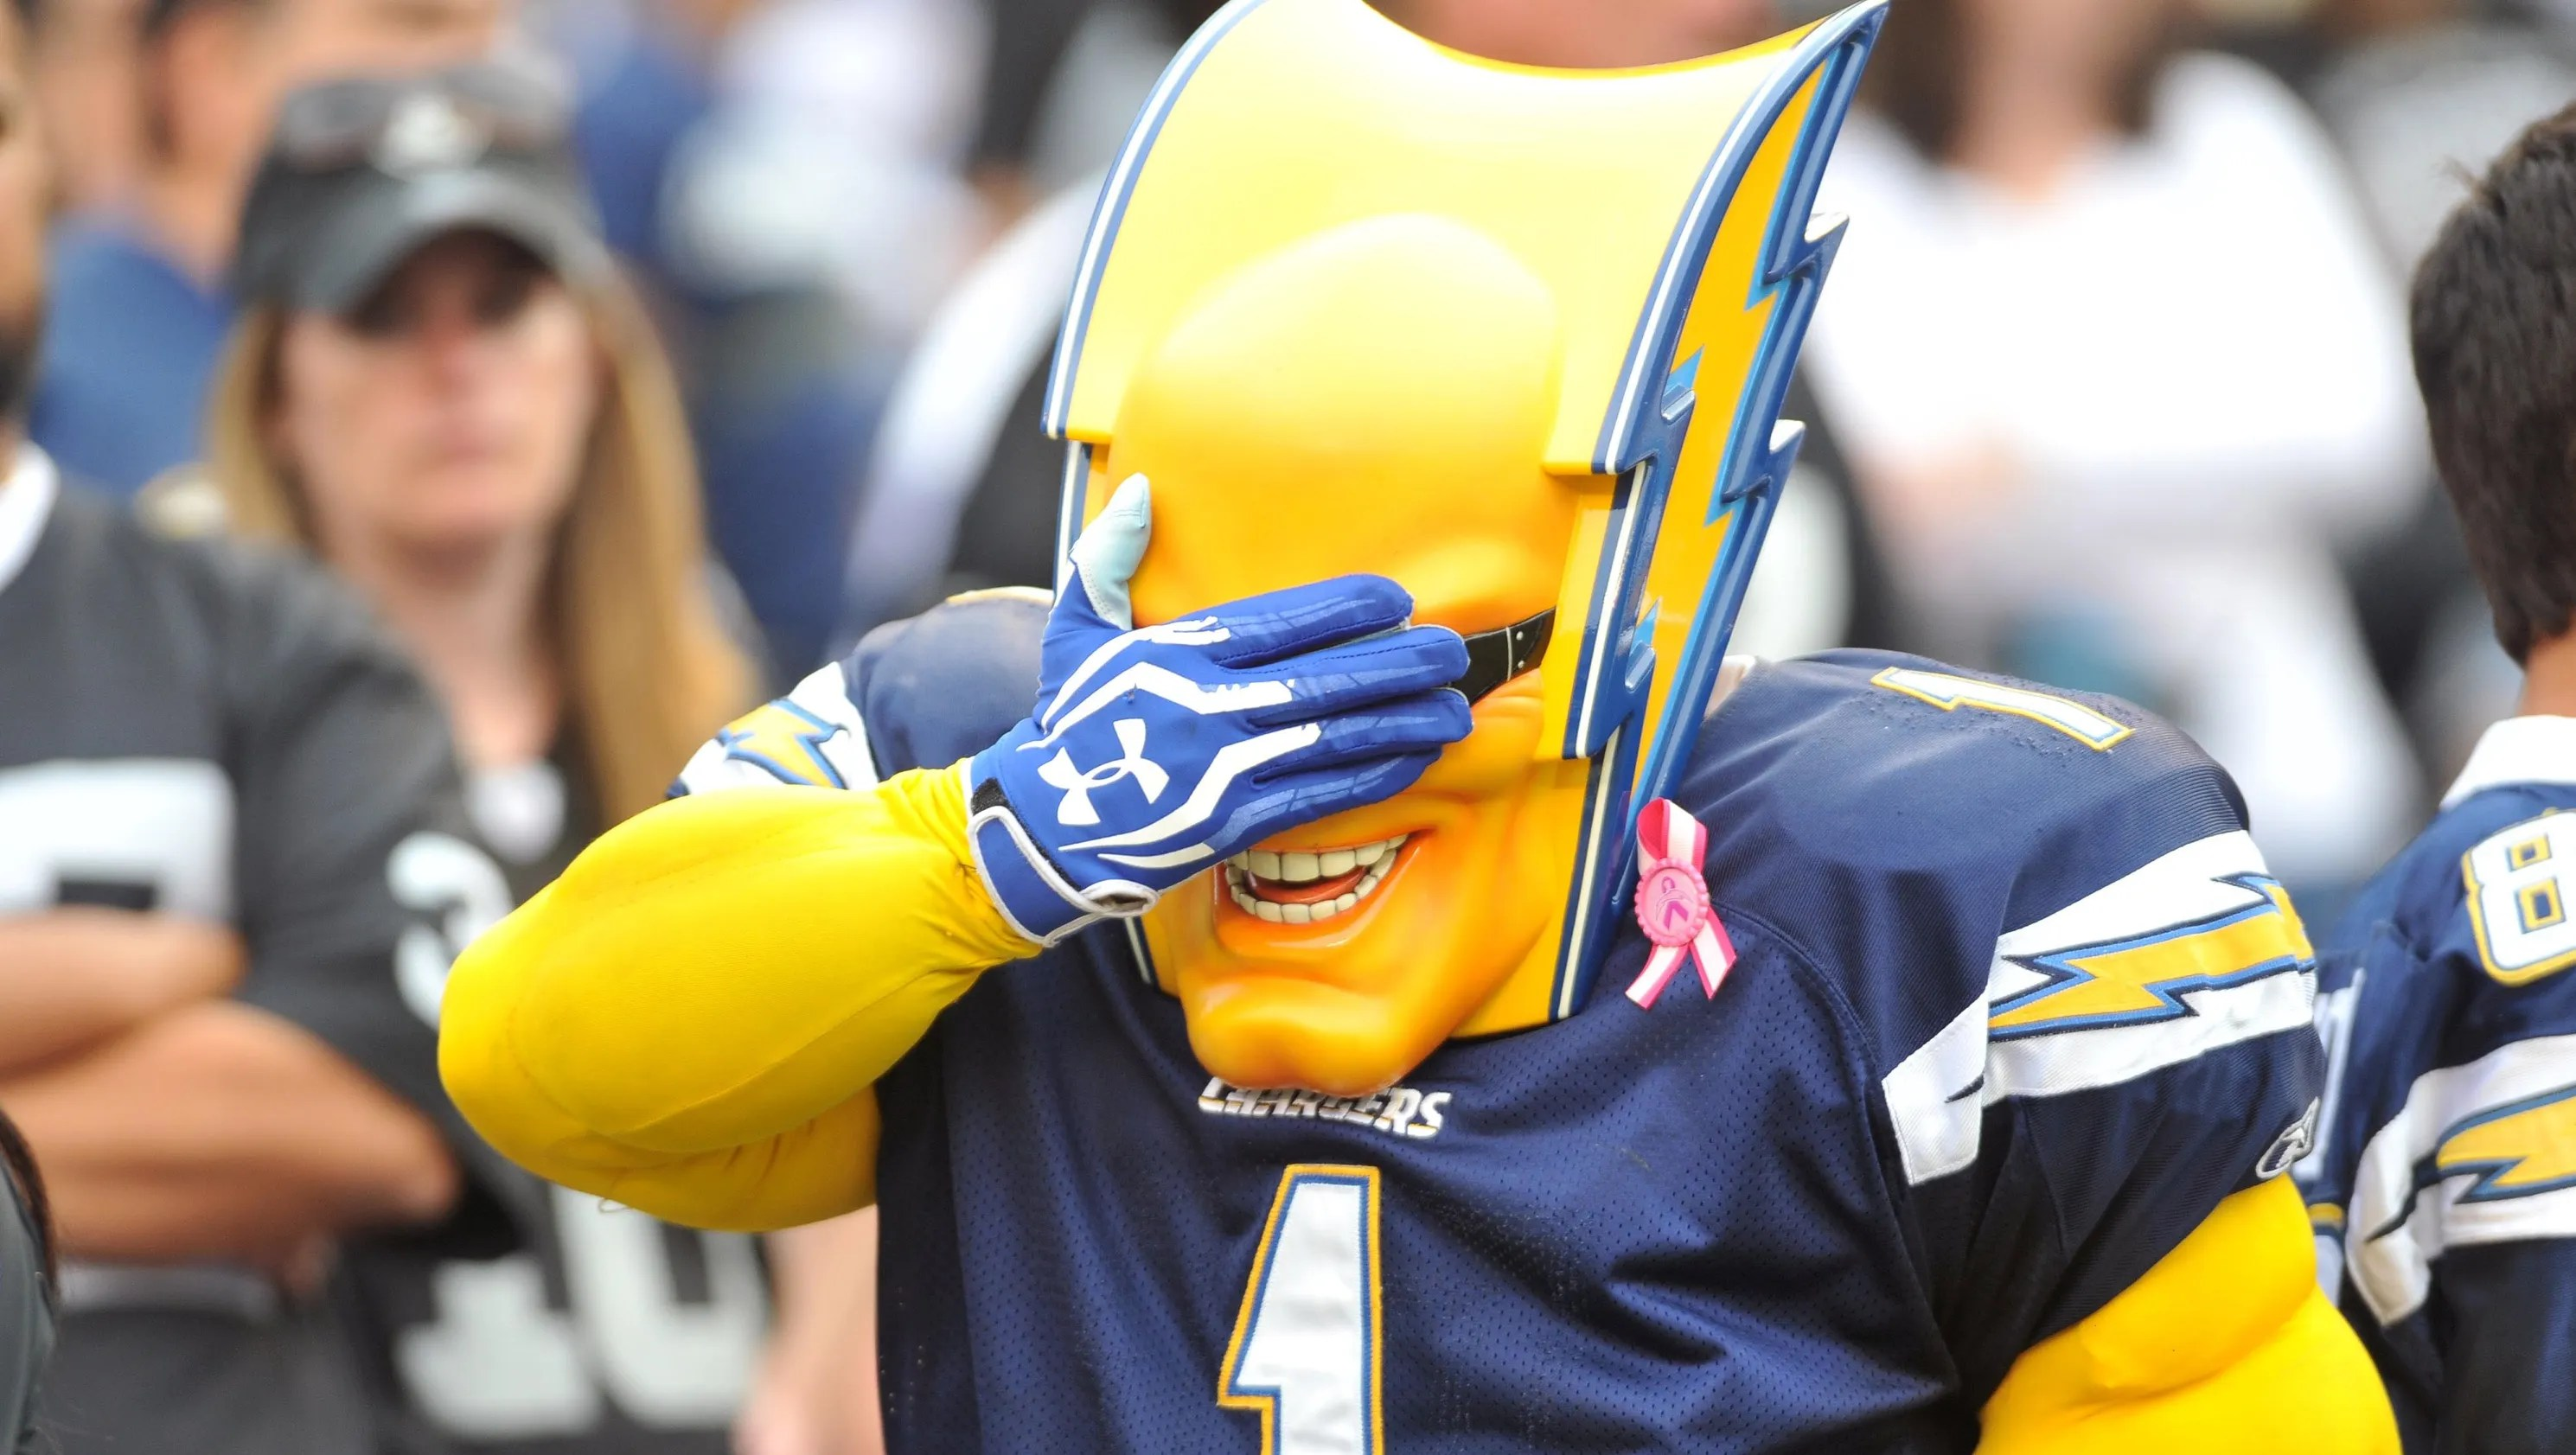 Chargers Rams Raiders All File To Relocate To Los Angeles